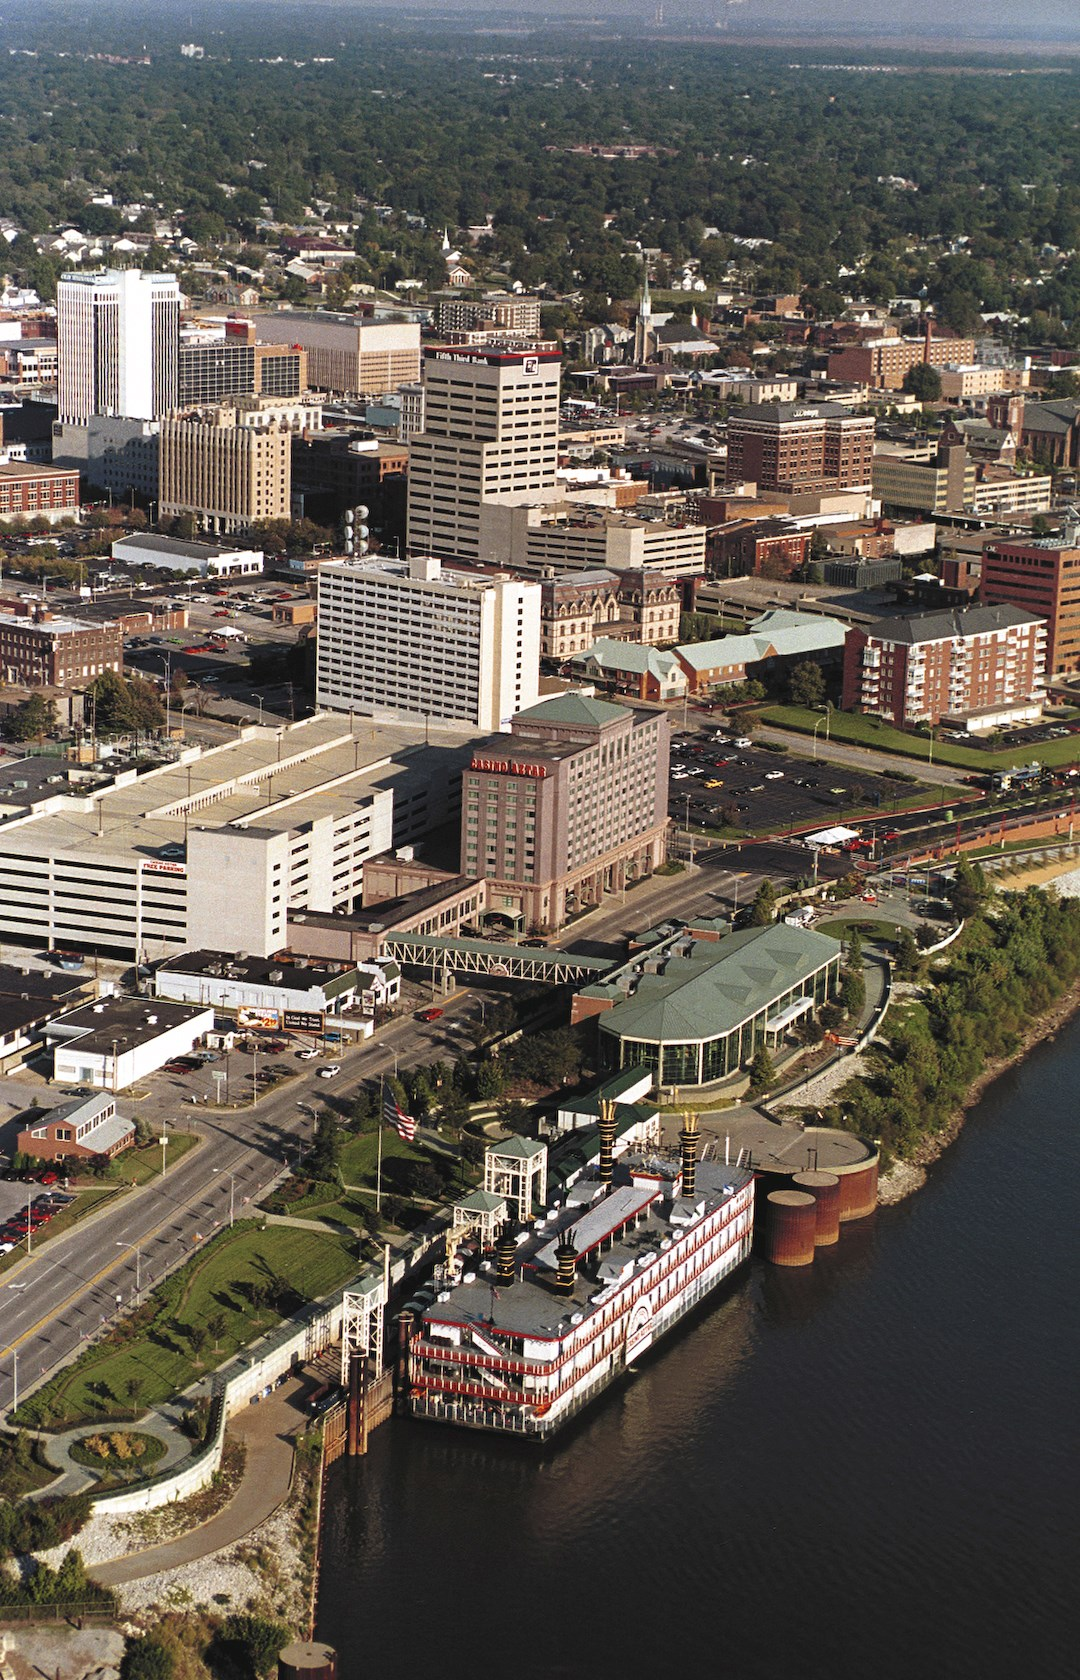 Aerial view of downtown Evansville and Ohio River